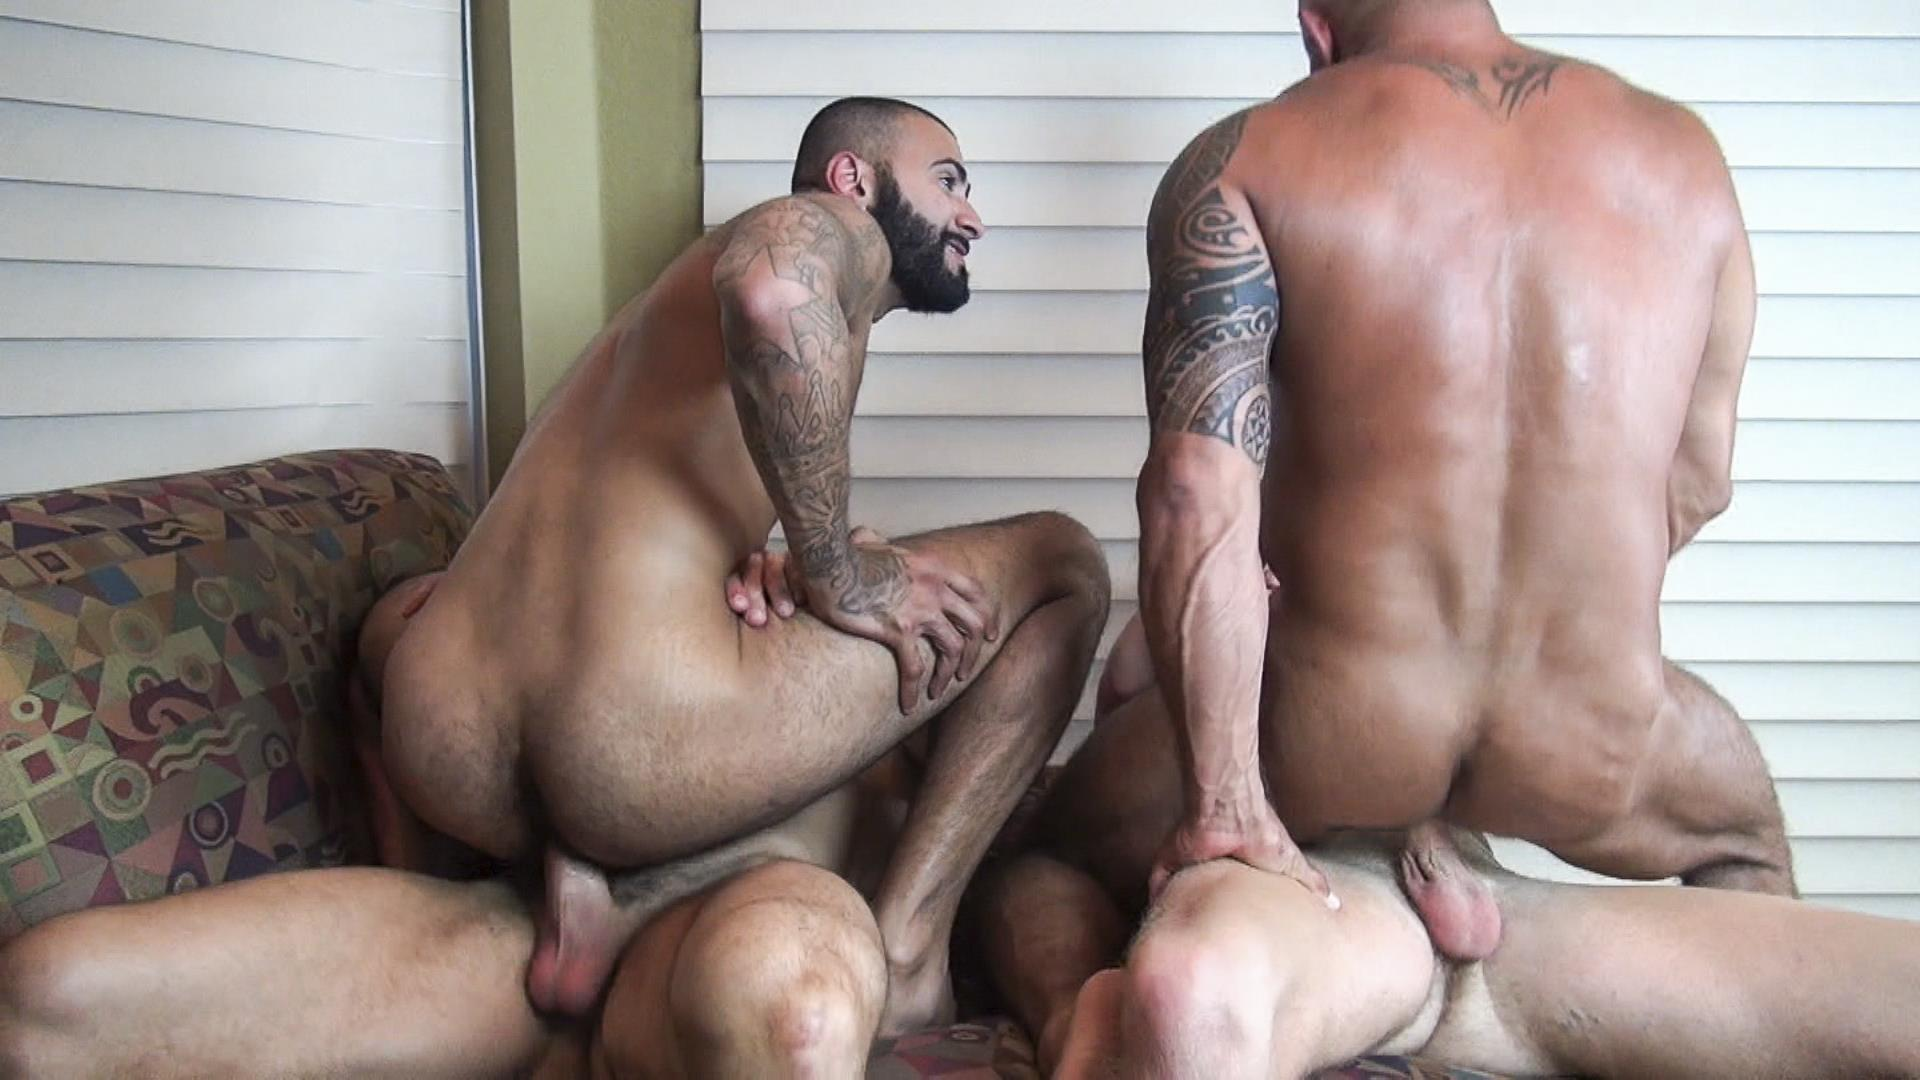 Raw Fuck Club Vic Rocco and Rikk York and Billy Warren and Job Galt Bareback Daddy Amateur Gay Porn 13